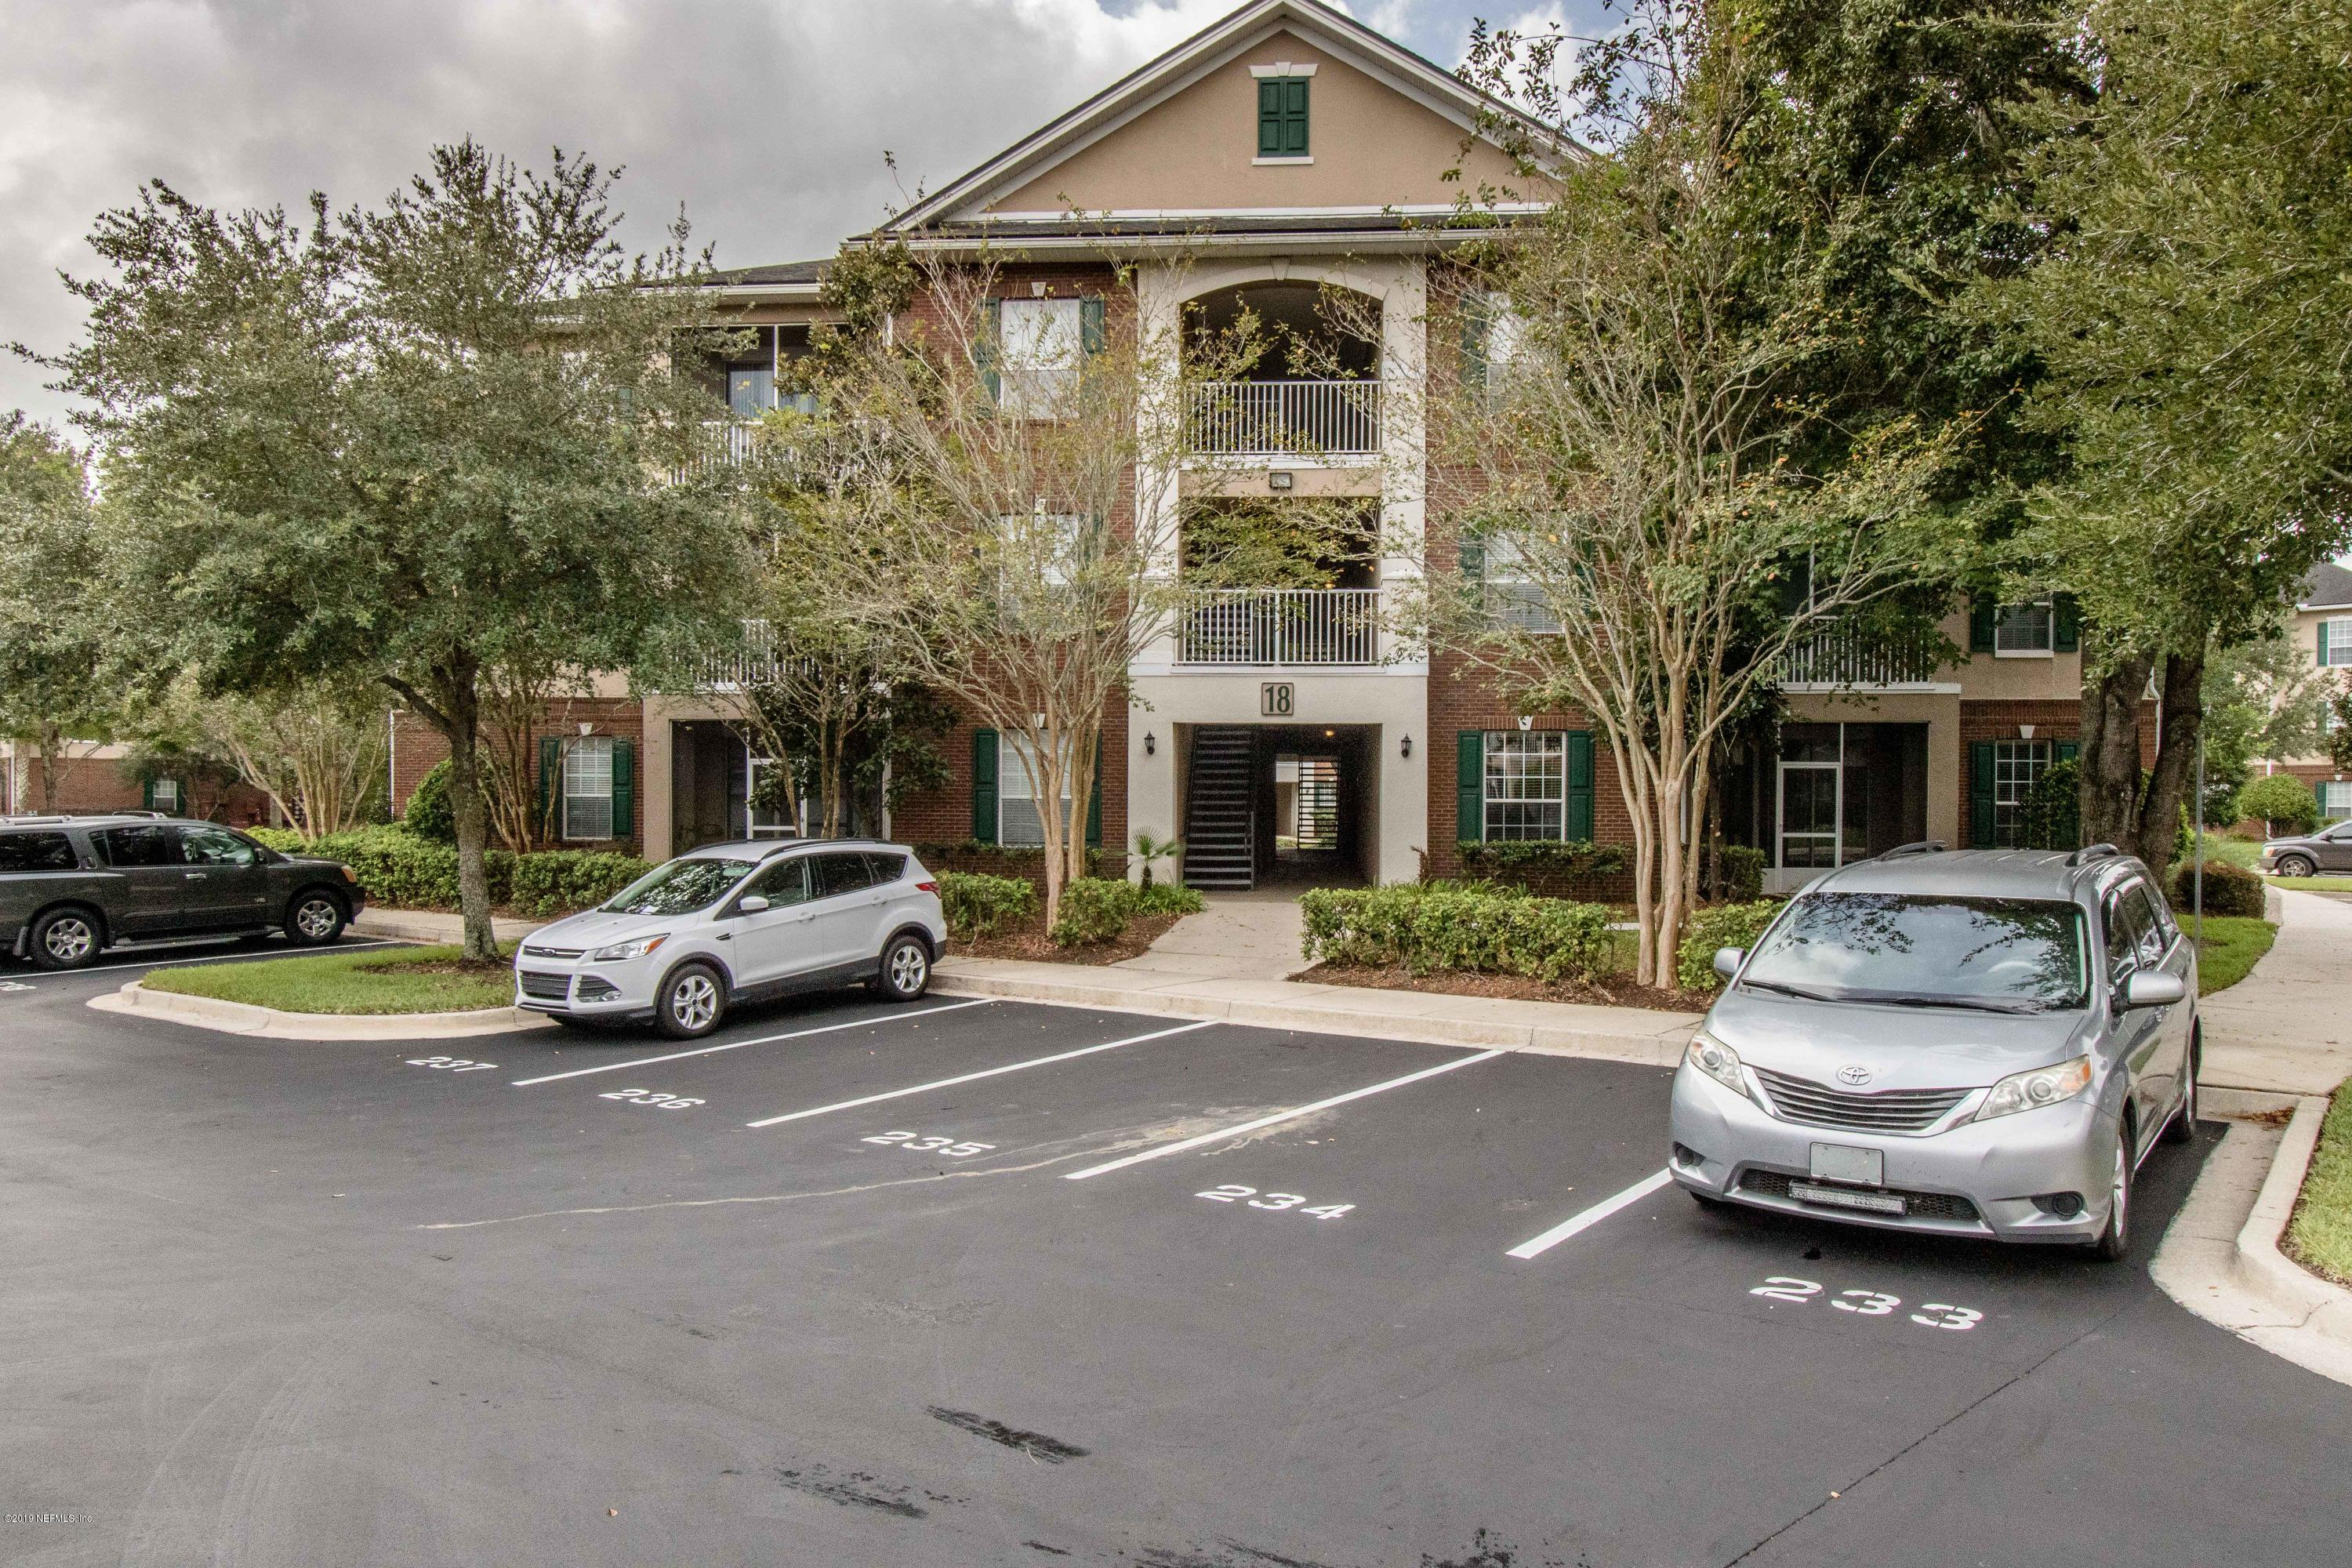 785 OAKLEAF PLANTATION- ORANGE PARK- FLORIDA 32065, 2 Bedrooms Bedrooms, ,2 BathroomsBathrooms,Condo,For sale,OAKLEAF PLANTATION,1015227